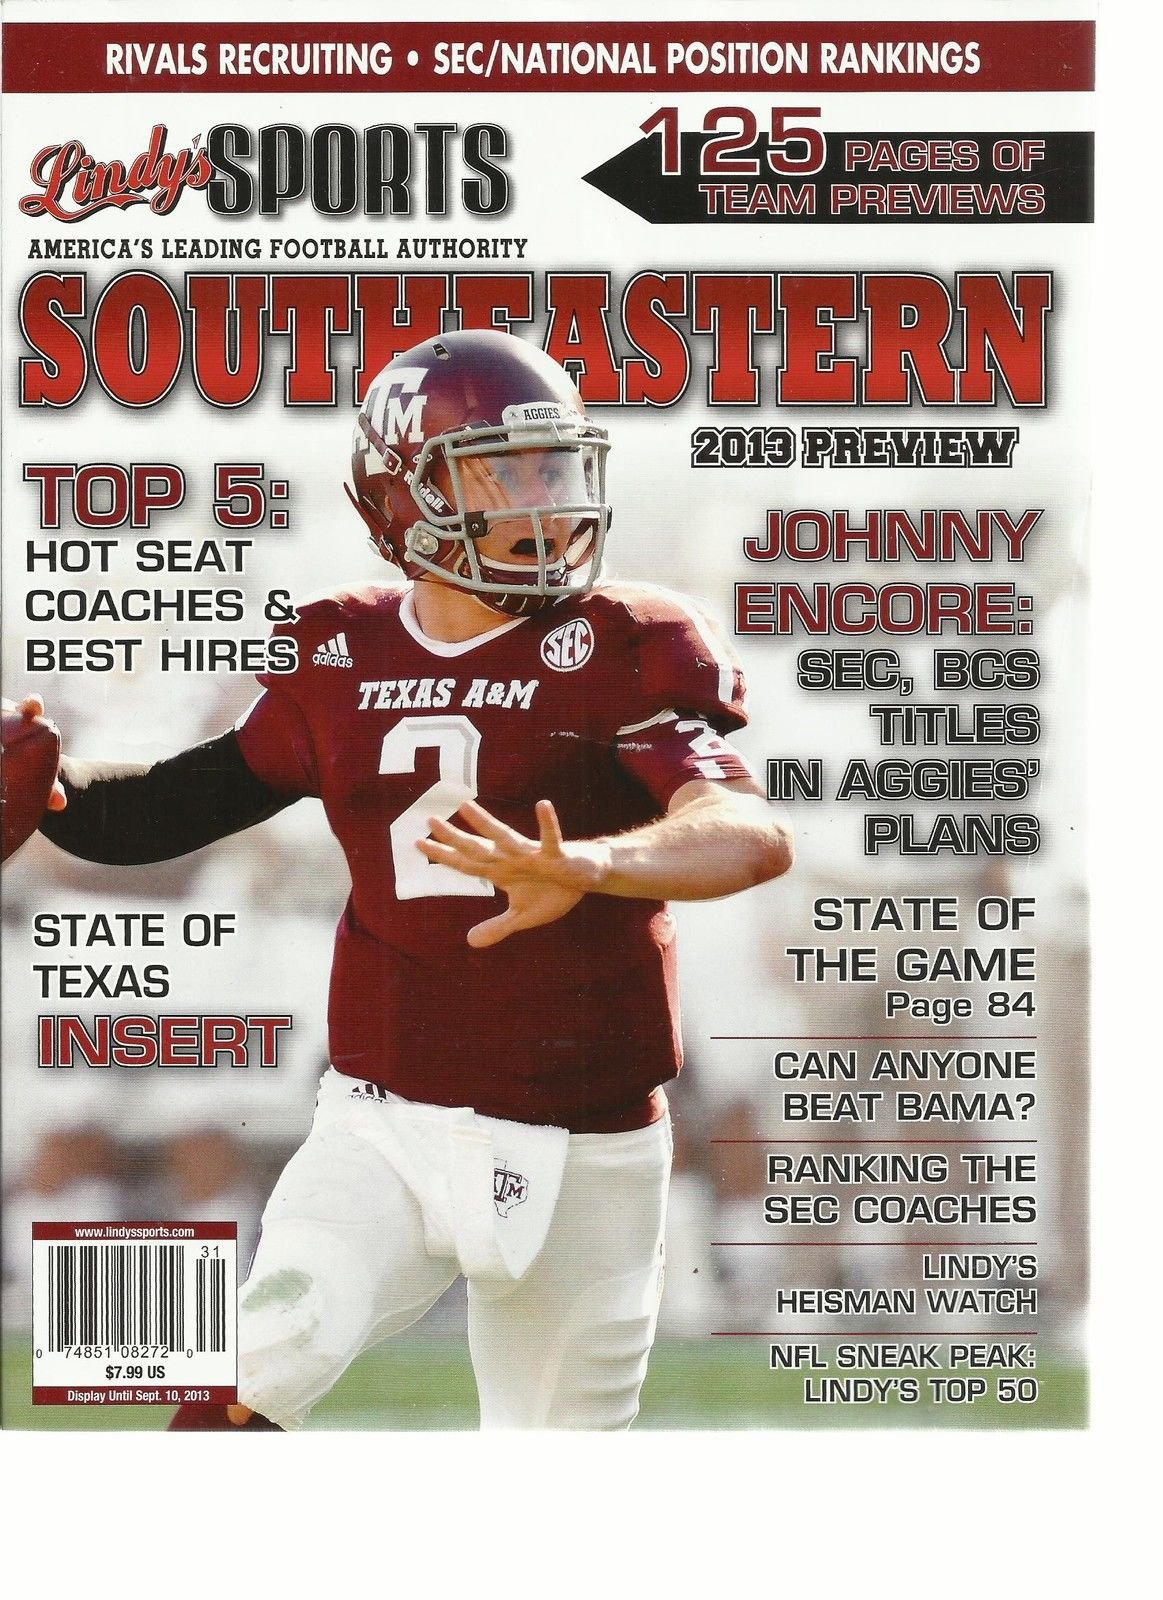 LINDY'S SPORTS SOUTHEASTERN 2013 PREVIEW, (AMERICA'S LEADING FOOTBALL AUTHORITY